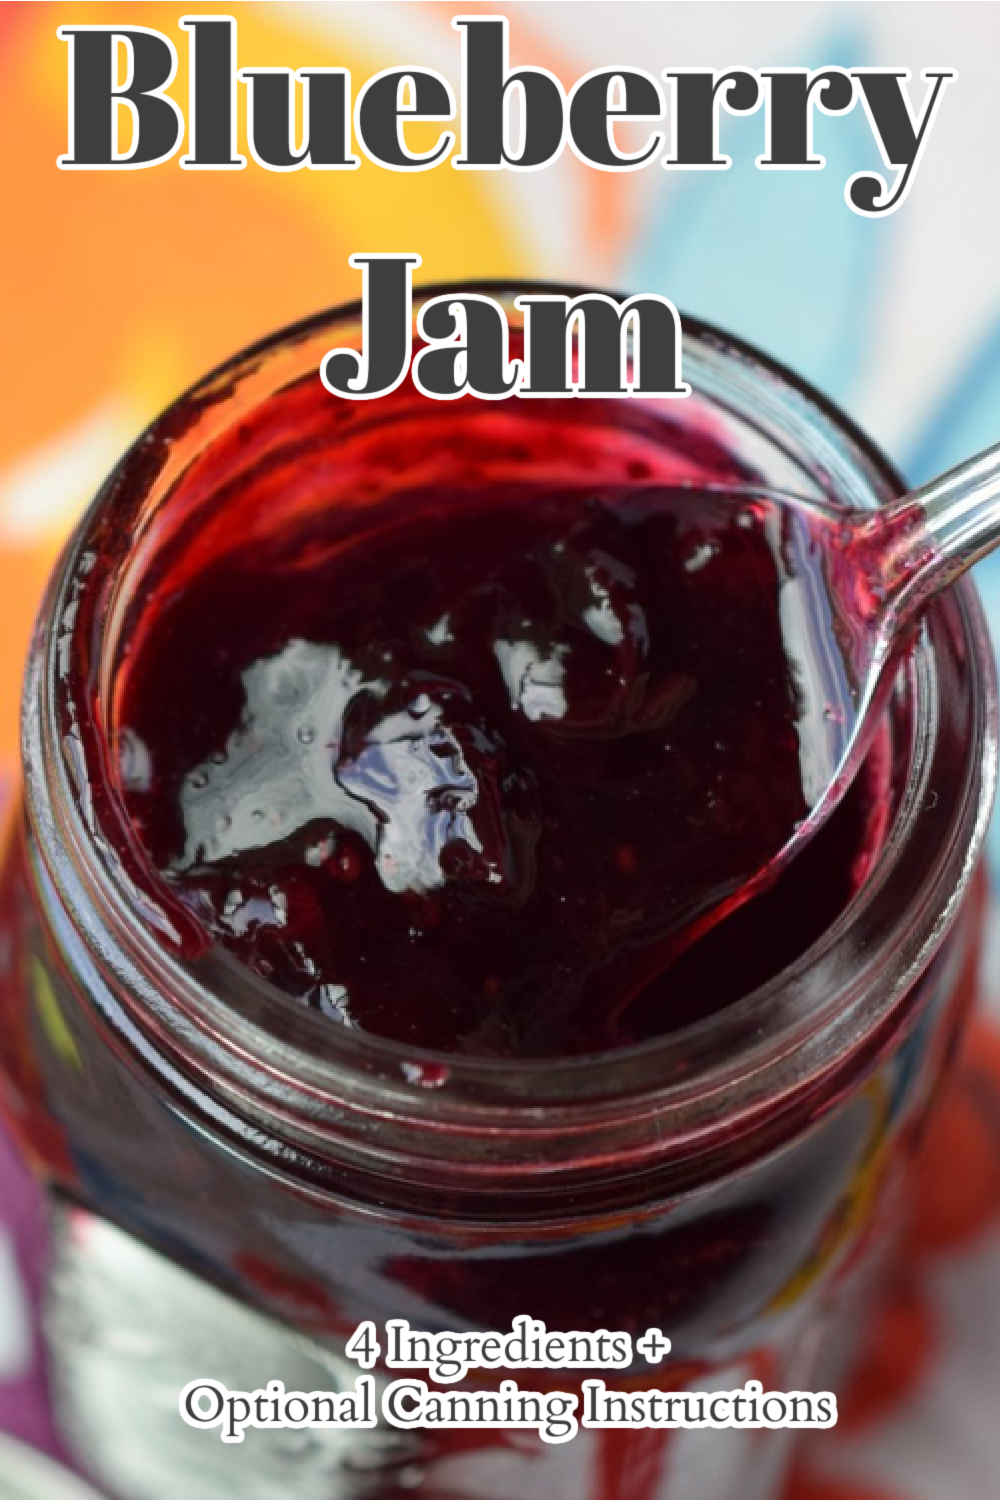 Blueberry Jam (+ Optional Canning Instructions) - Delicious homemade jam made with just 4 simple ingredients. This classic recipe can either be canned or immediately used! Blueberry Jam Recipe | Homemade Blueberry Jam | Canning Recipe